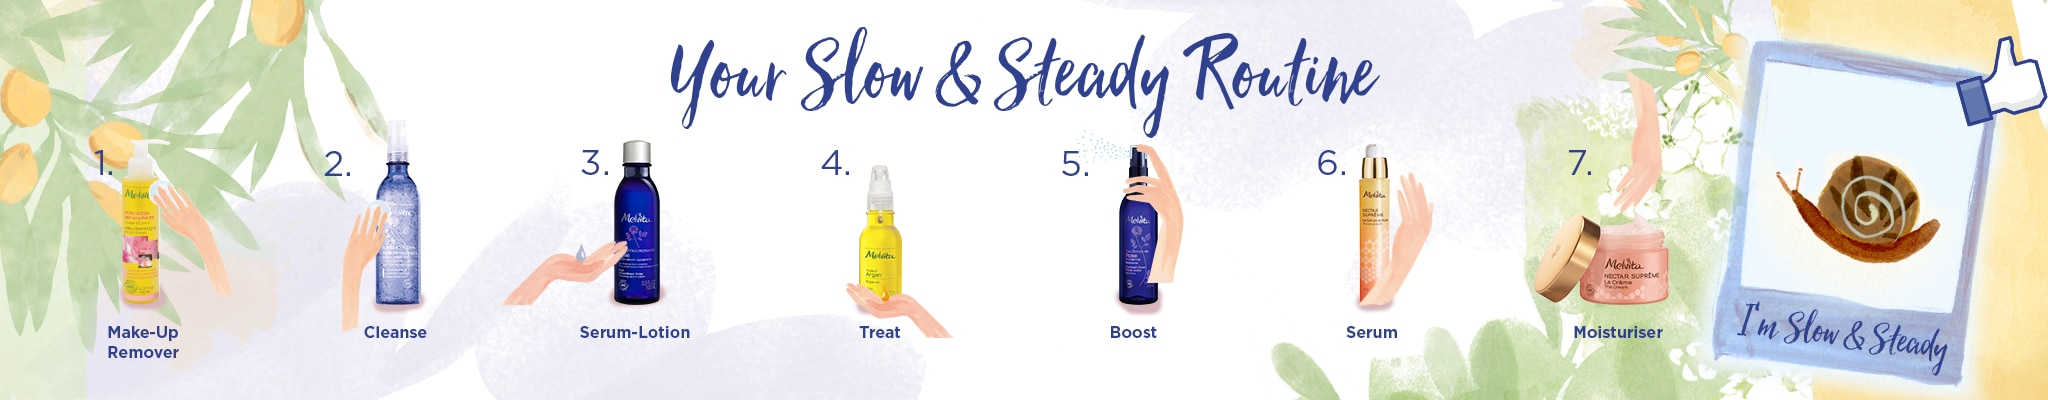 Your Slow and Steady Skincare Routine